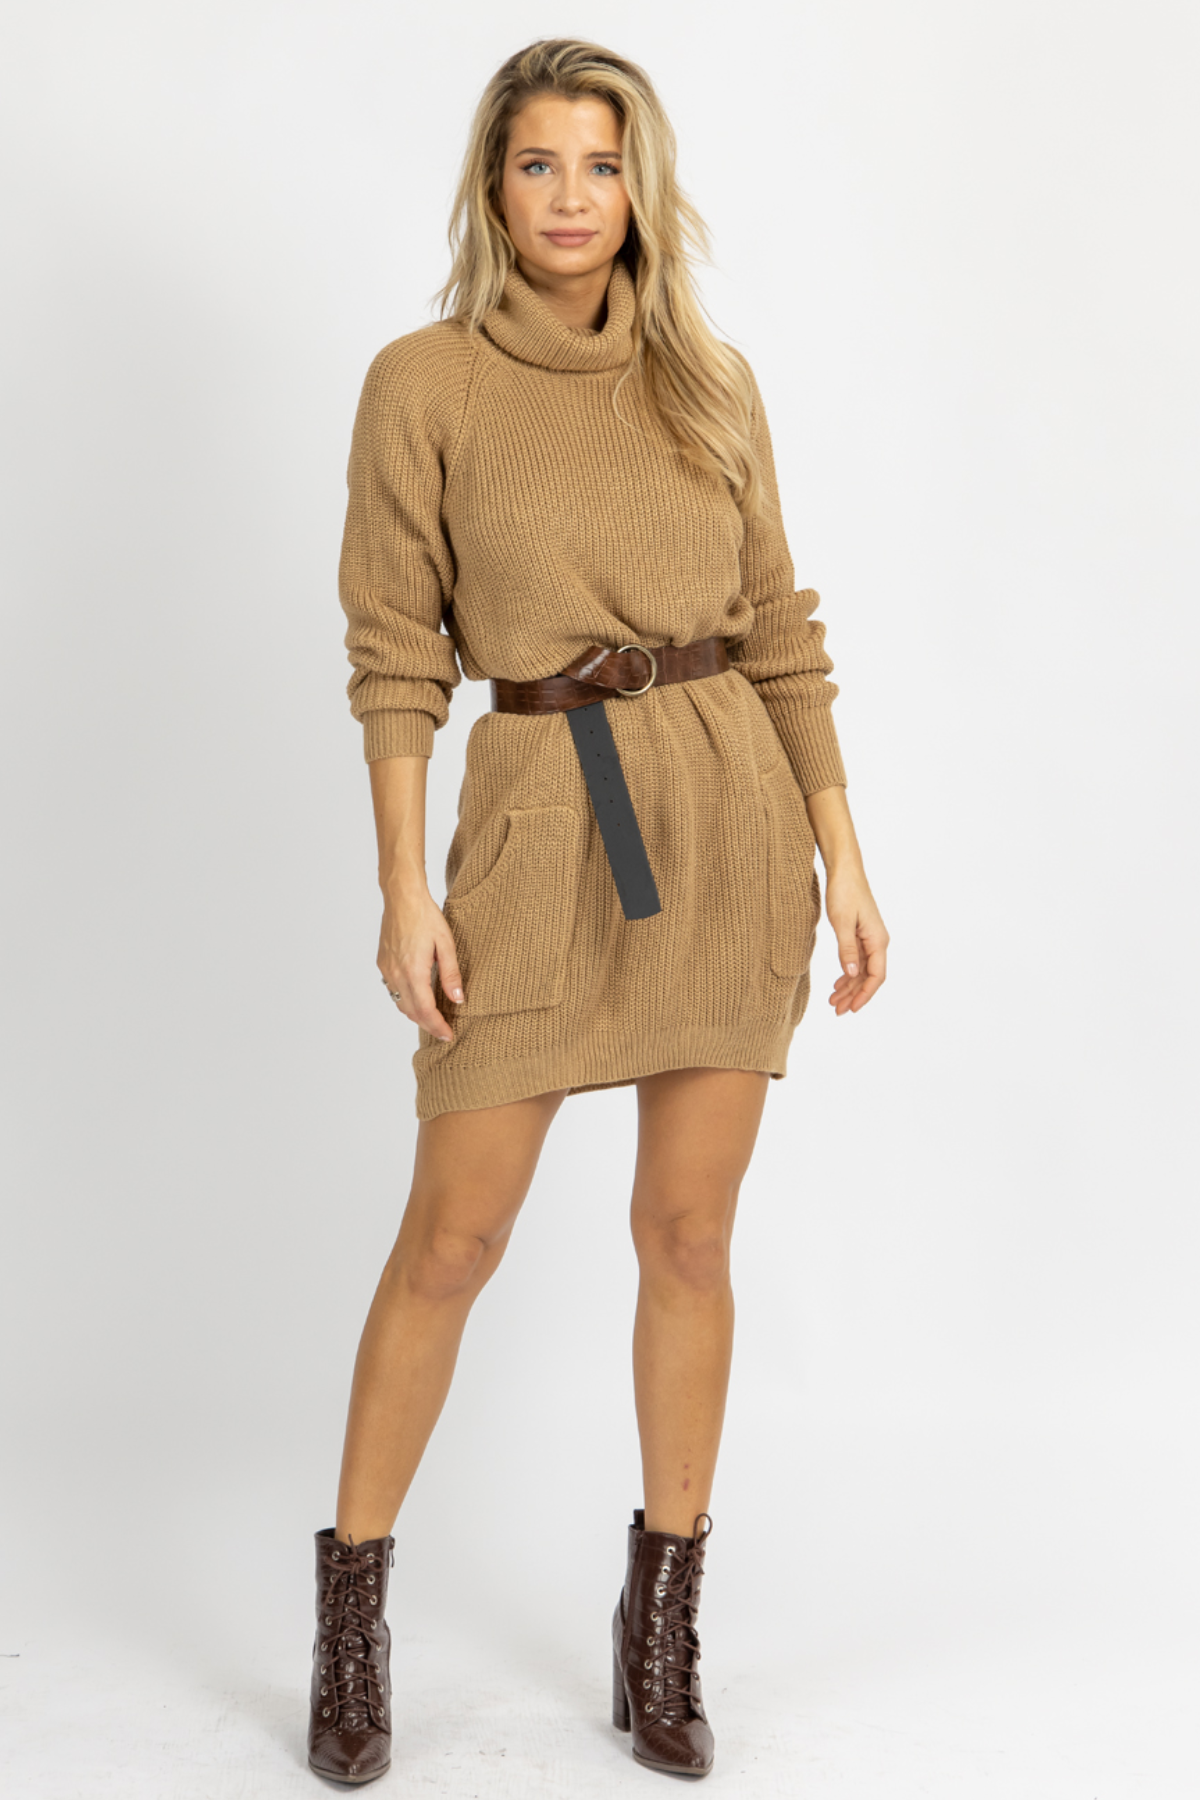 TAN KNIT SWEATER DRESS